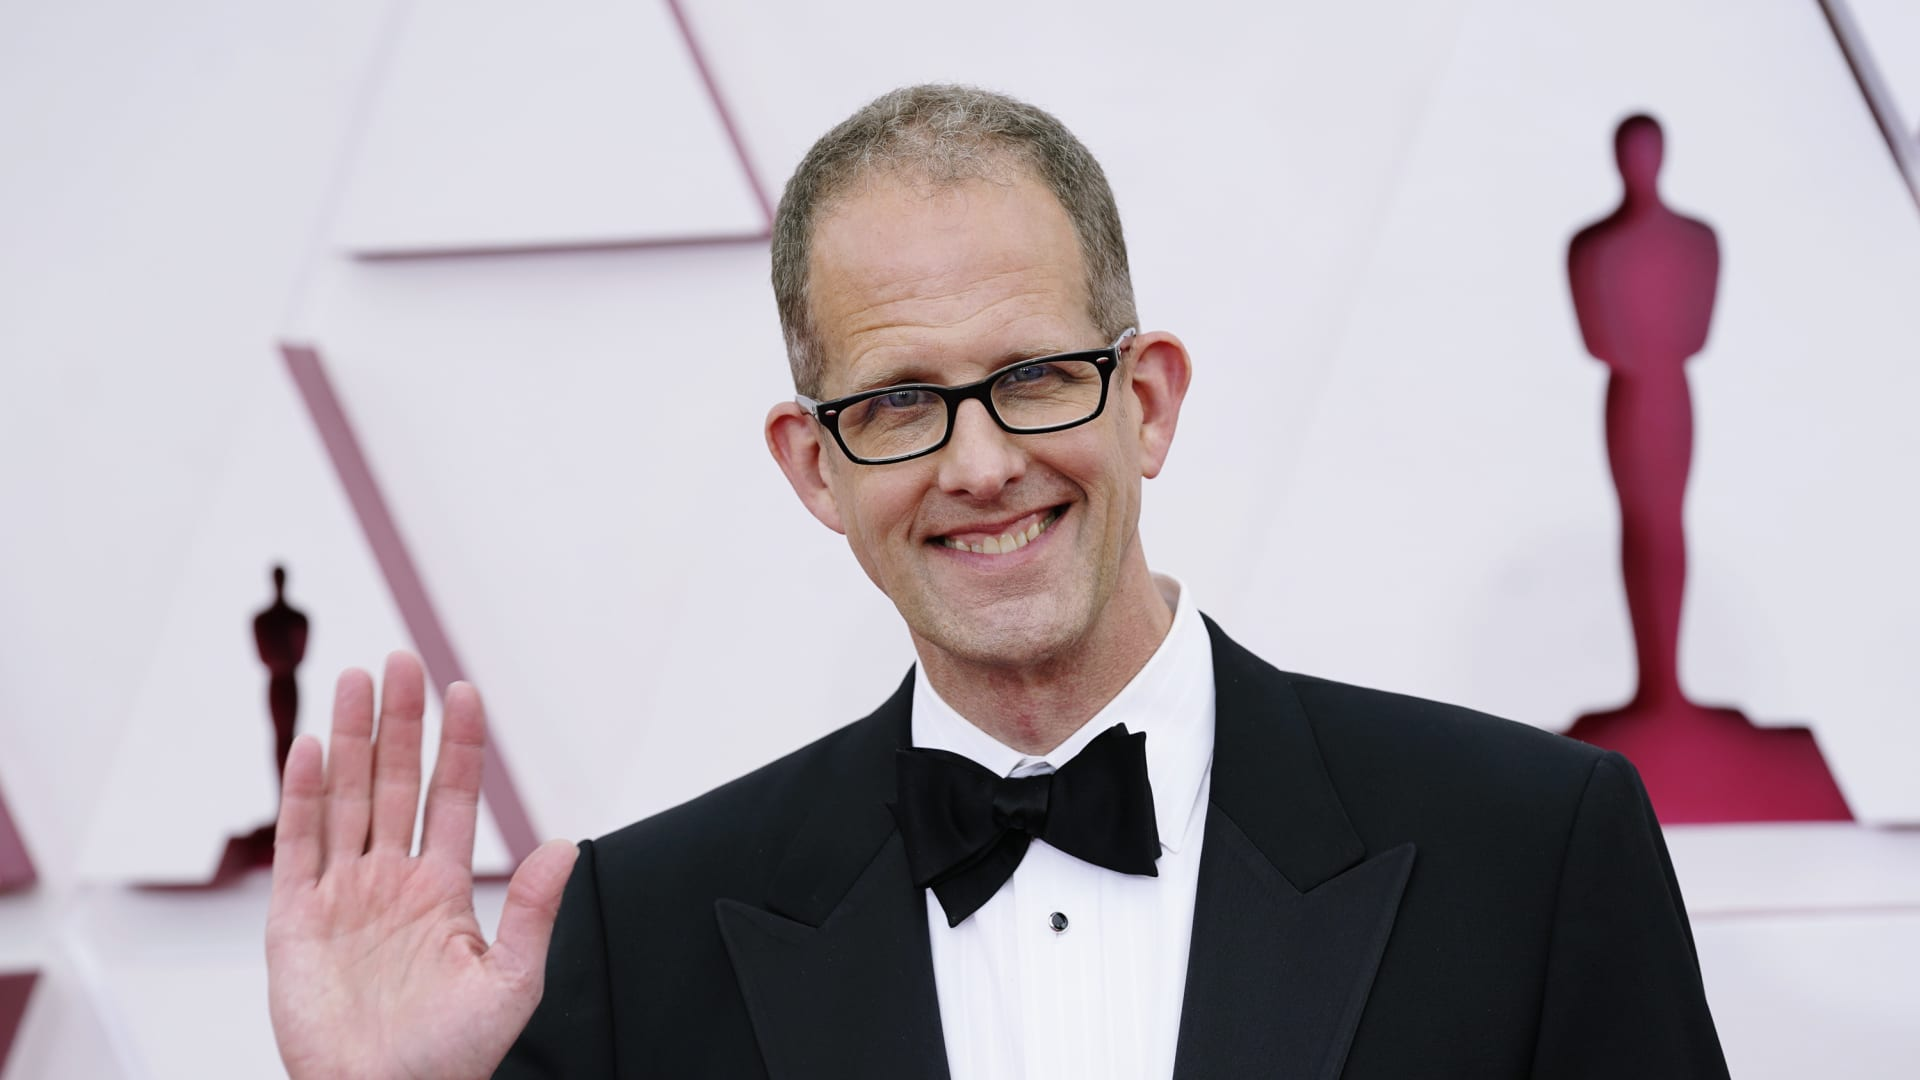 Pete Docter attends the 93rd Annual Academy Awards at Union Station on April 25, 2021 in Los Angeles, California.